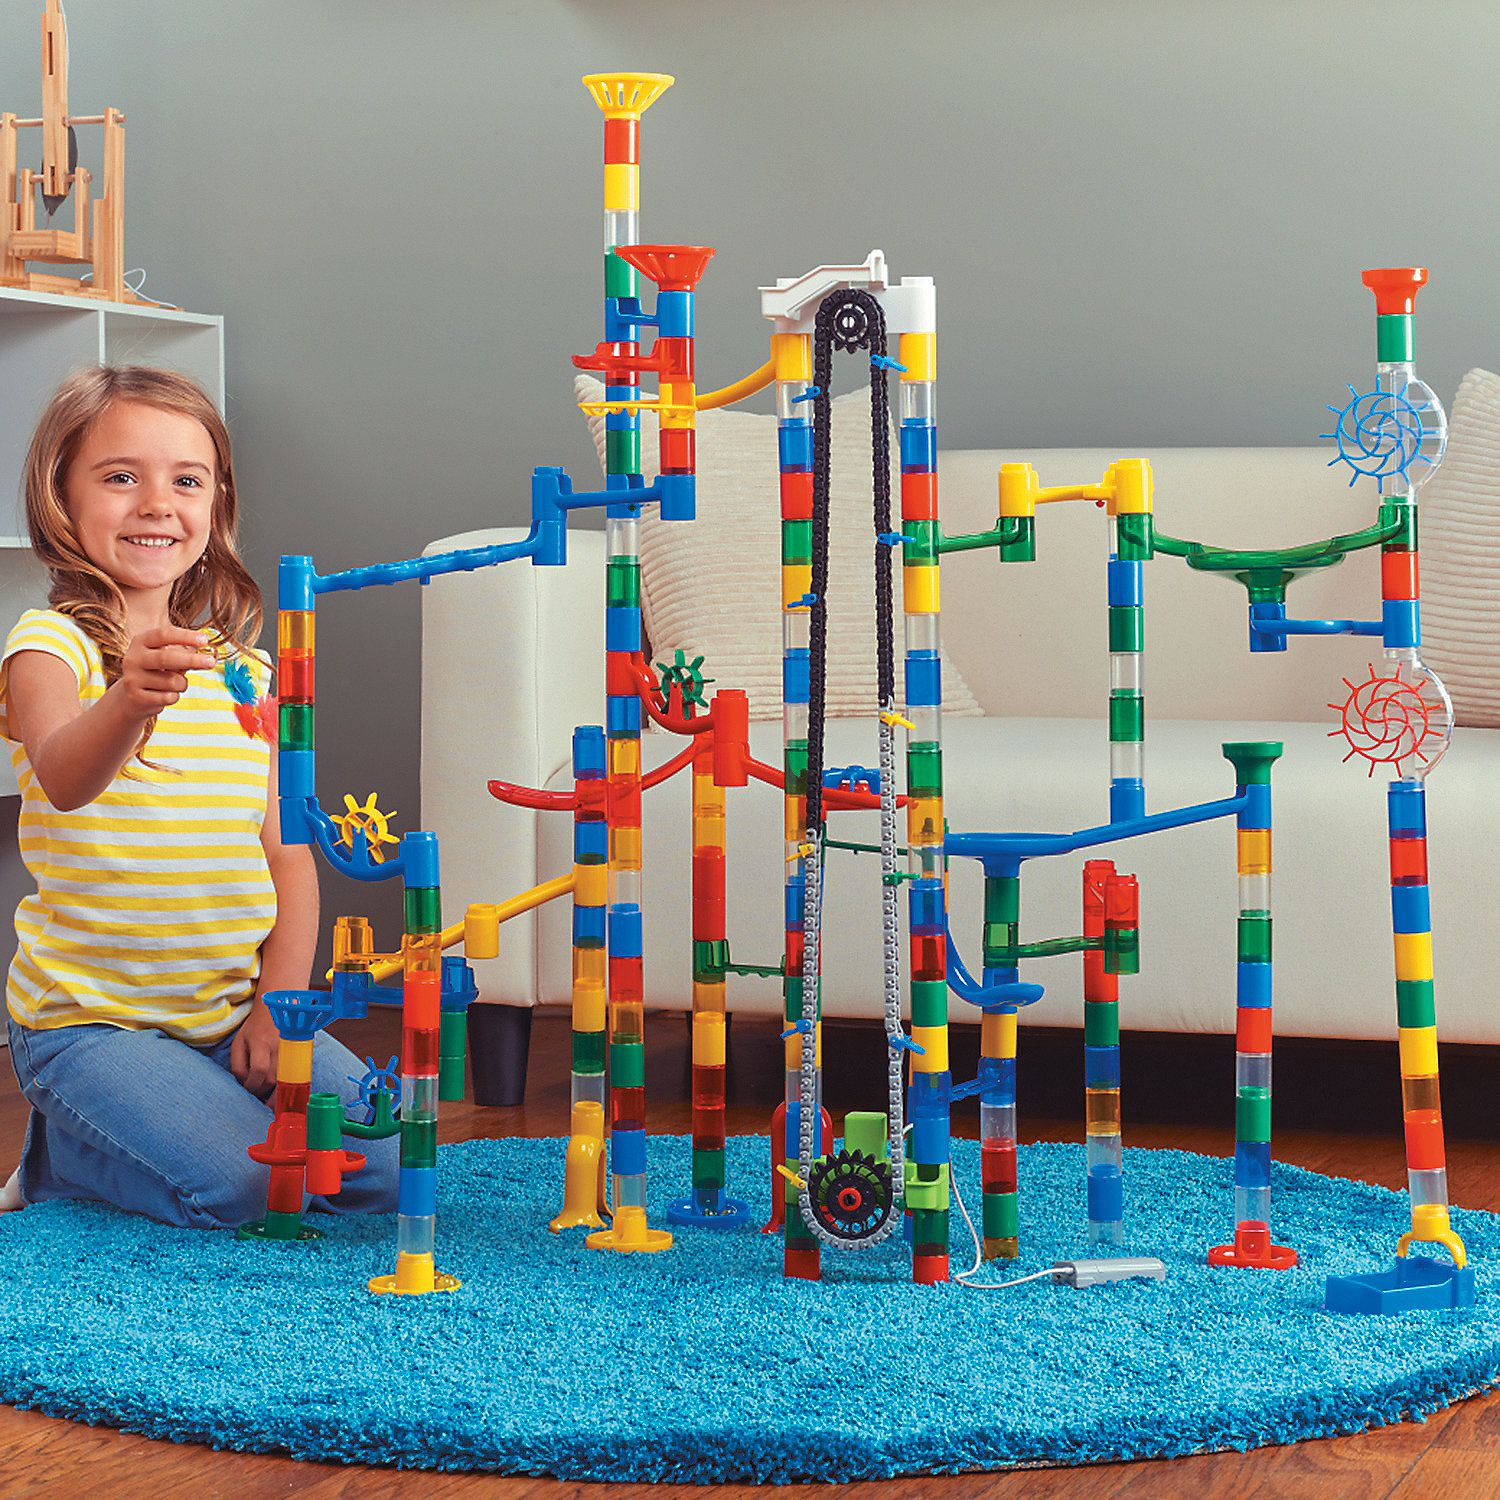 215 Piece Mega Marble Run With Motorized Marble Elevator Marble Run Stem Toys Classic Toys